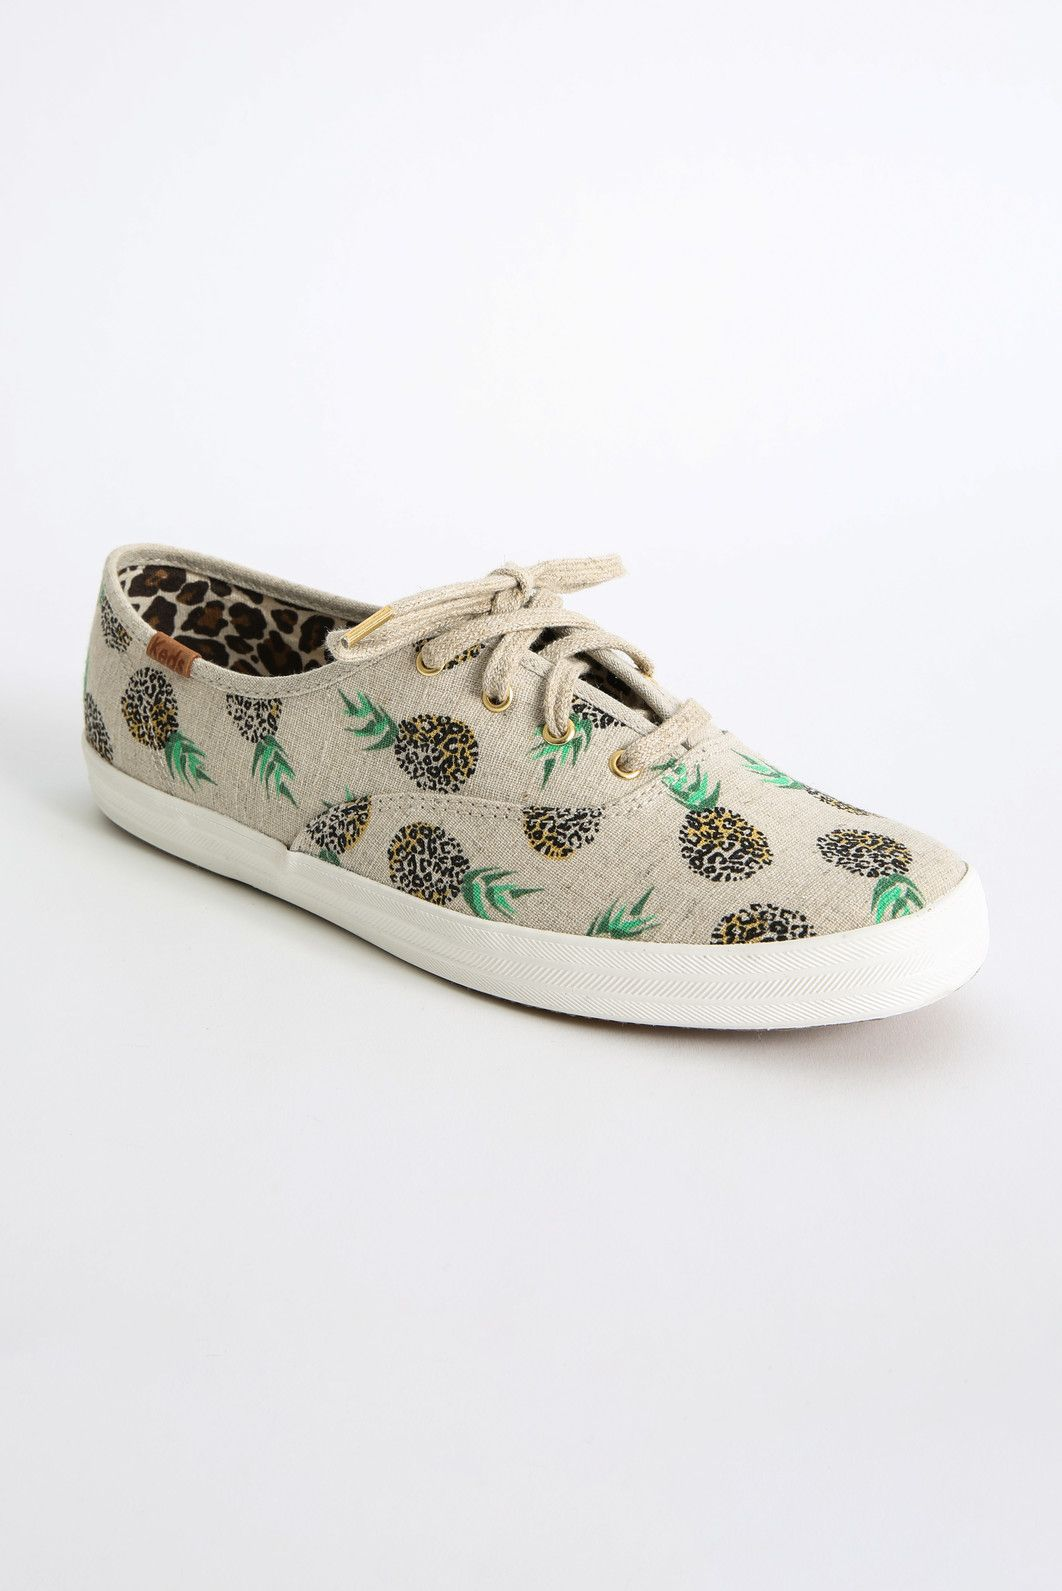 Keds Lace Up Pineapple Sneakers   Keds